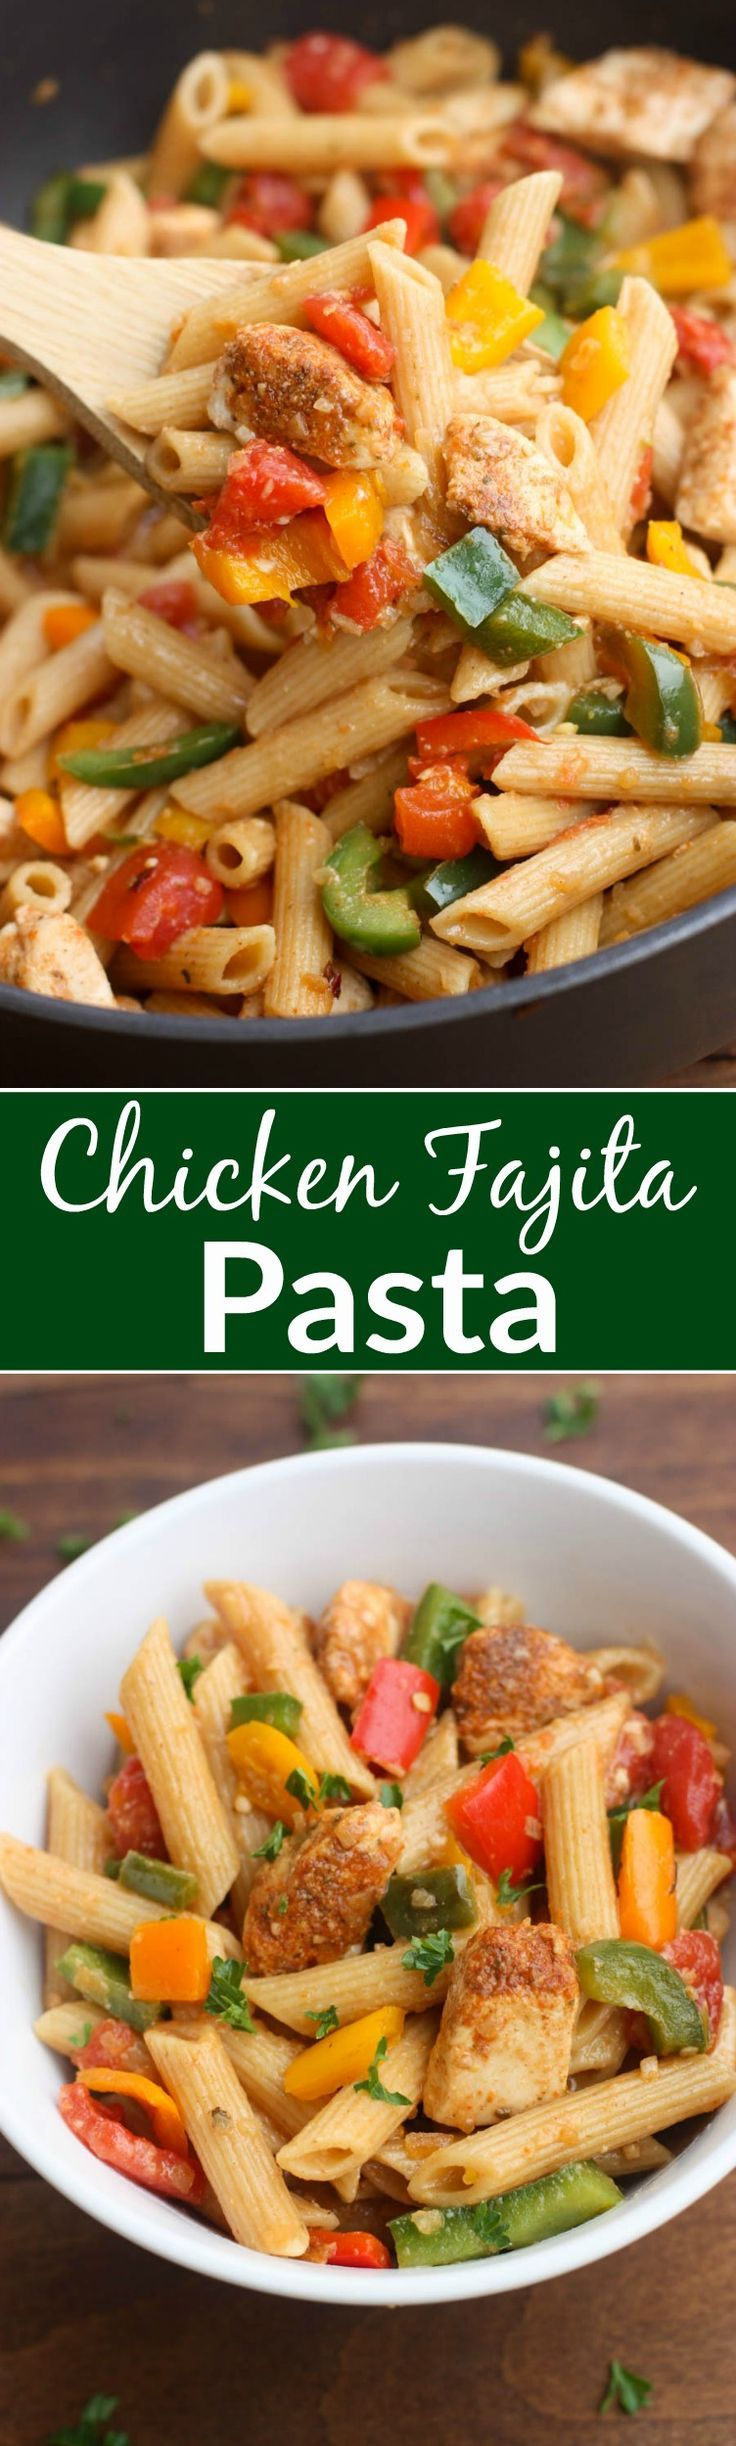 One Pan Chicken Fajita Pasta - everything you love about fajitas, transformed into a bold and delicious pasta dish! | Tastes Better From Scratch